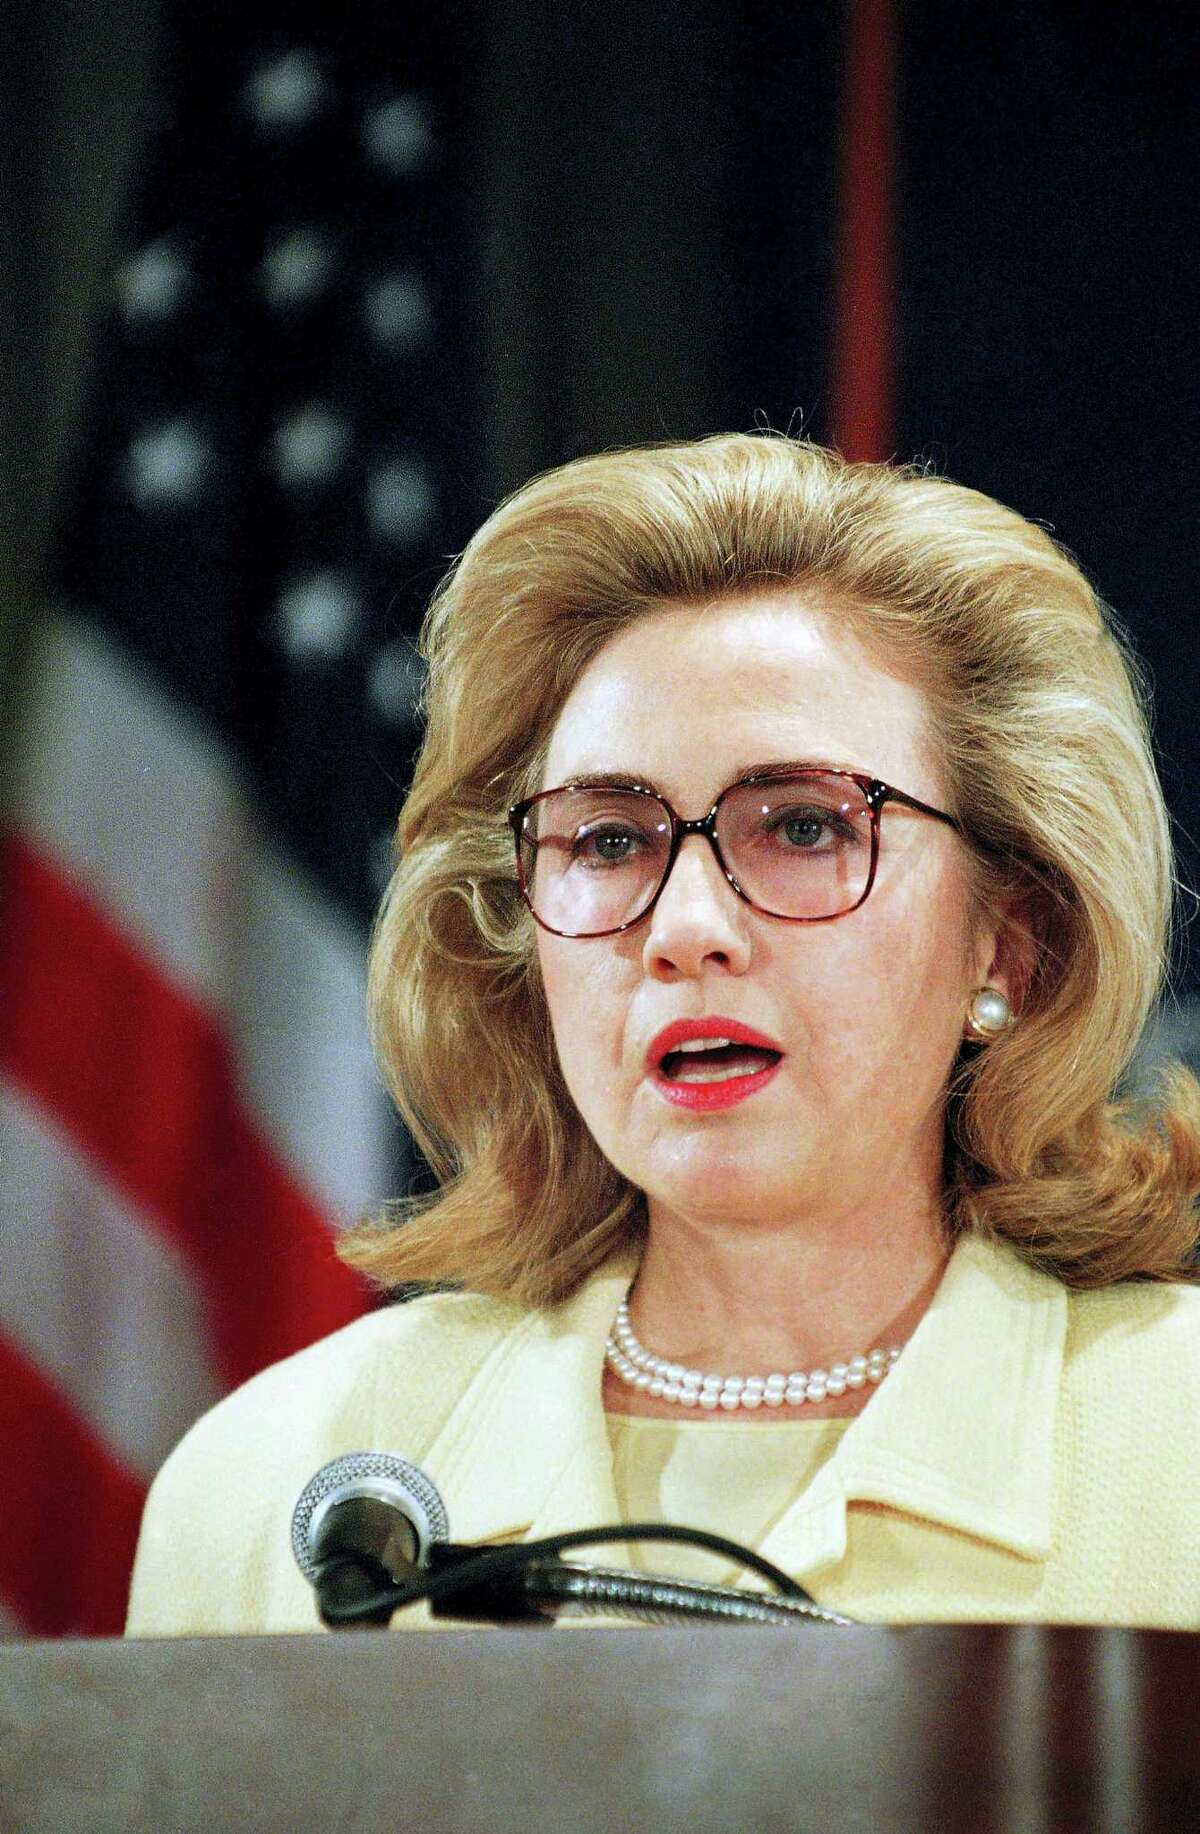 In this Aug. 14, 1995 photo, first lady Hillary Clinton addresses the Presidential Advisory Committee on Gulf War Veterans' Illnesses in Washington. The committee was set up to provide recommendations on government activities relating to Gulf War veterans' illnesses.